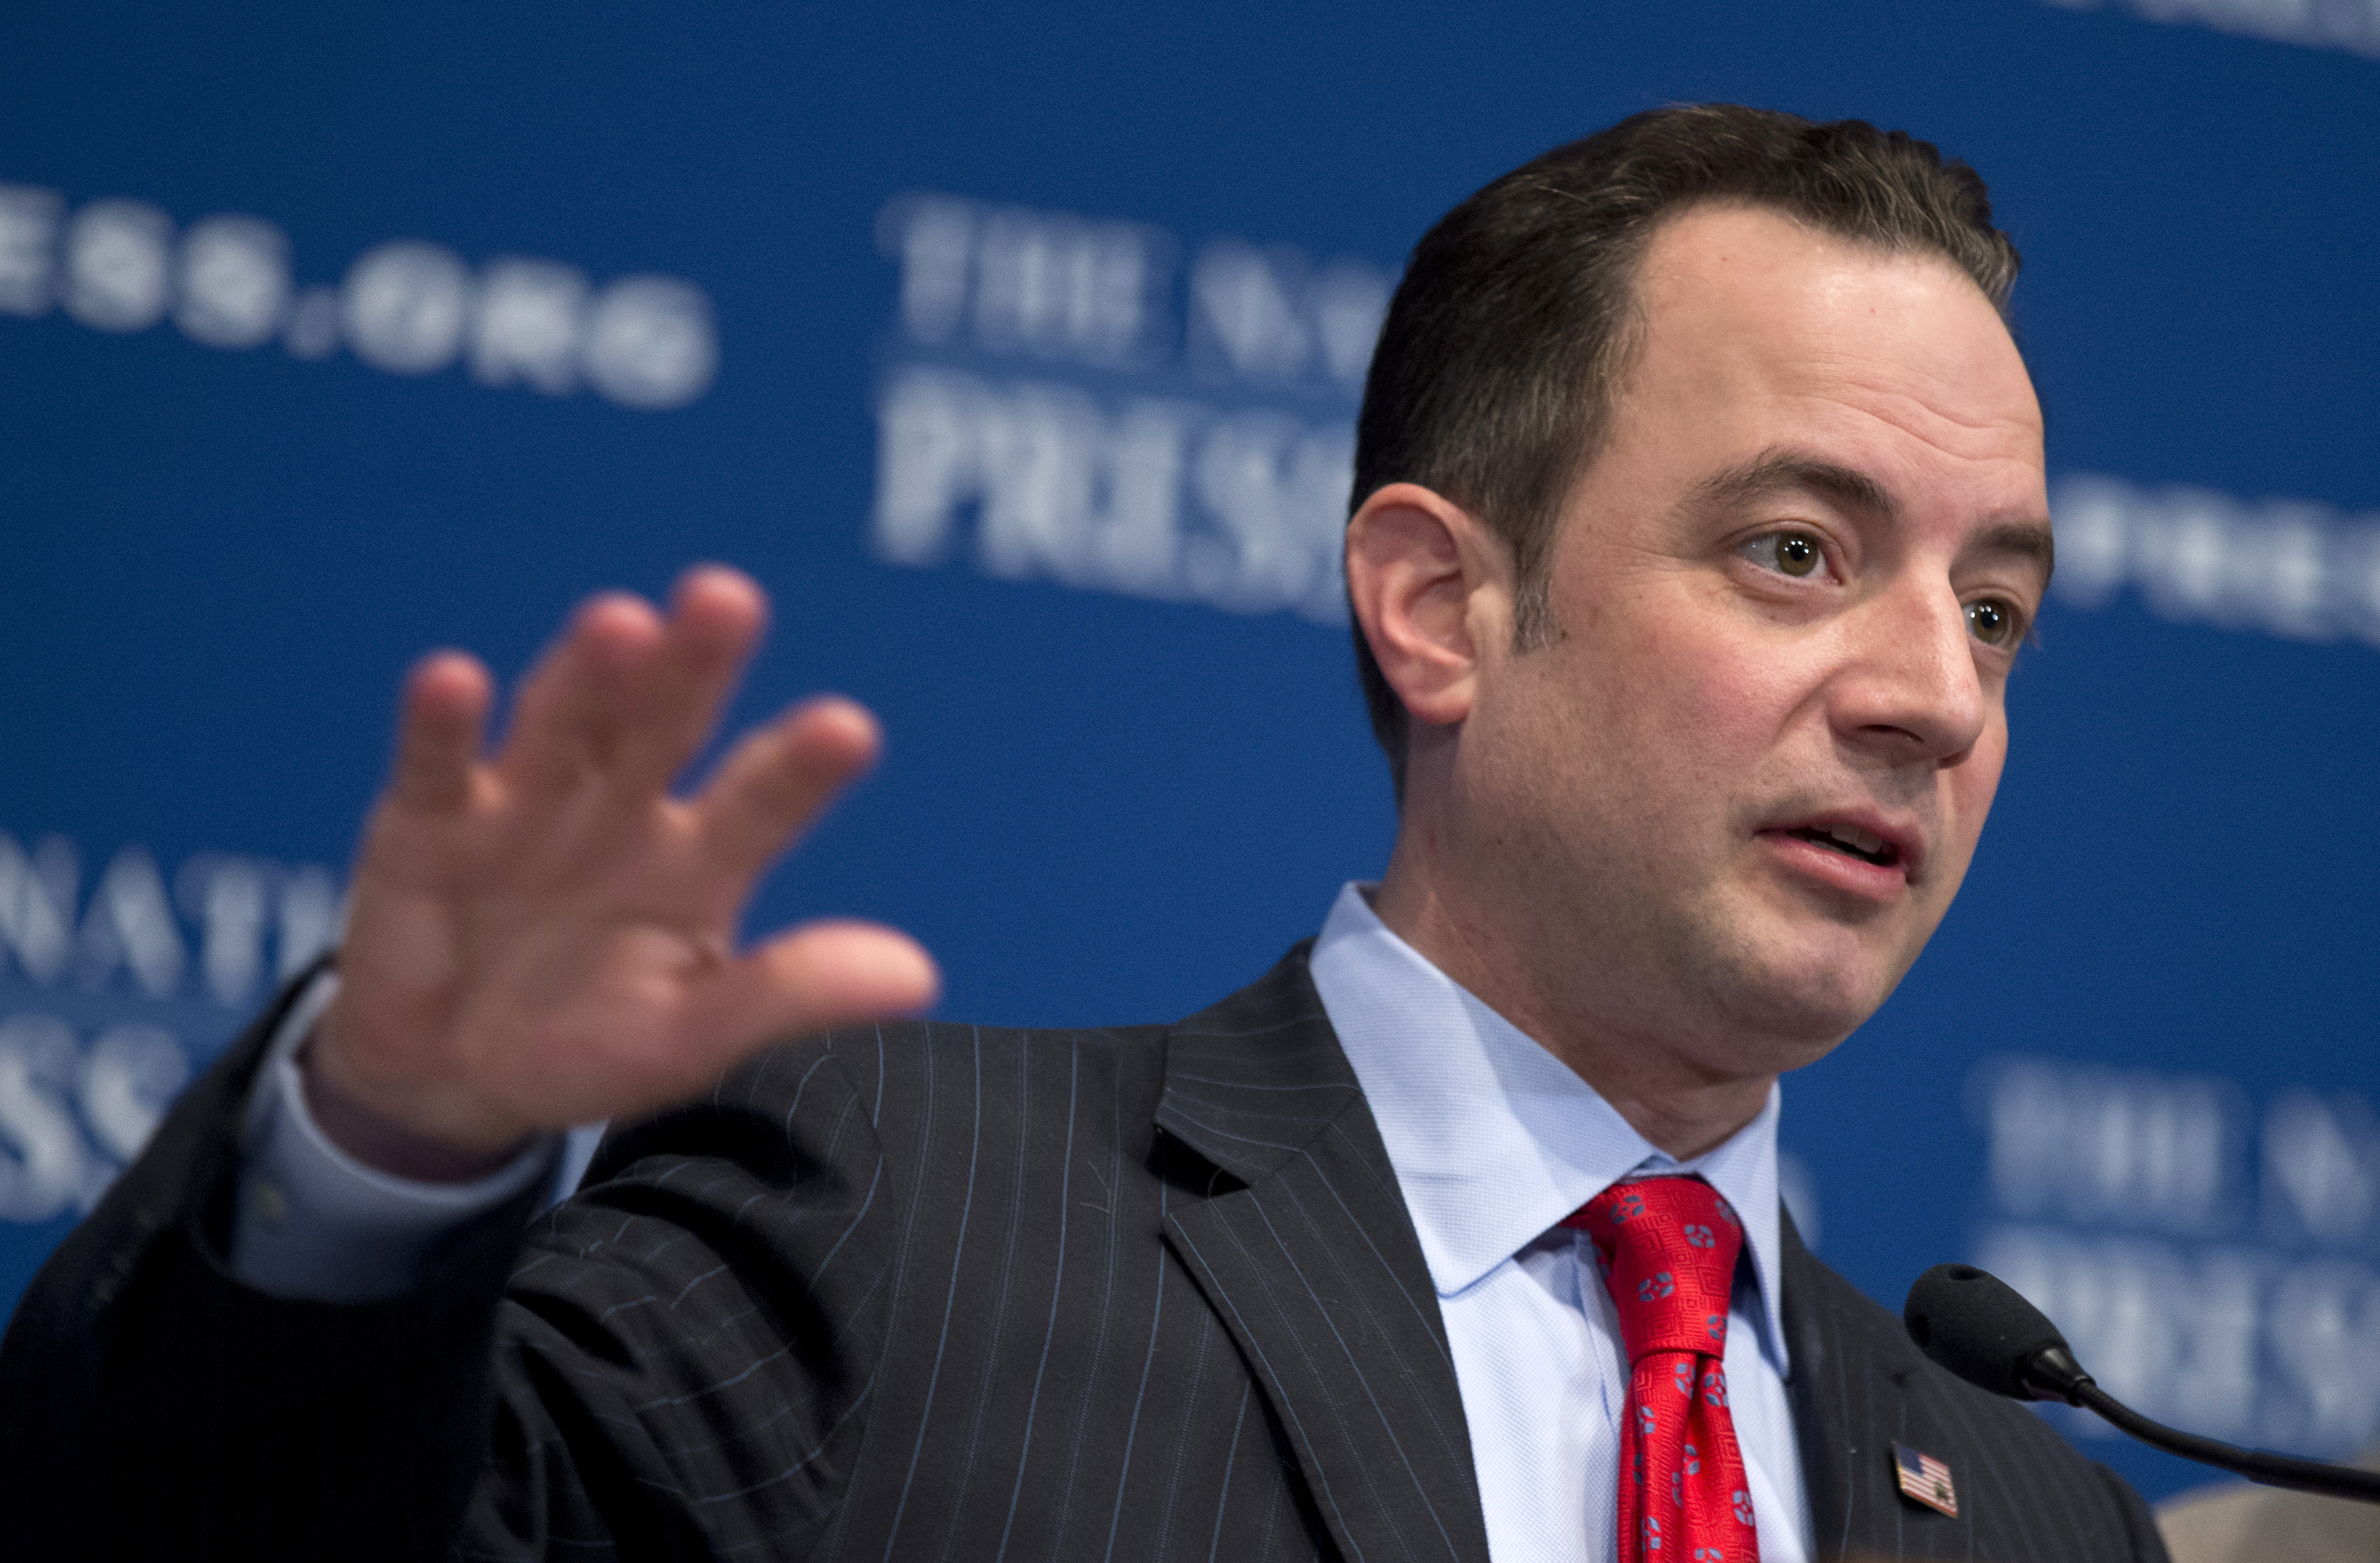 Republican National Committee Chairman Reince Priebus at the National Press Club in Washington, in 2013. Republican National Committee Chairman Reince Priebus at the National Press Club in Washington, in 2013.